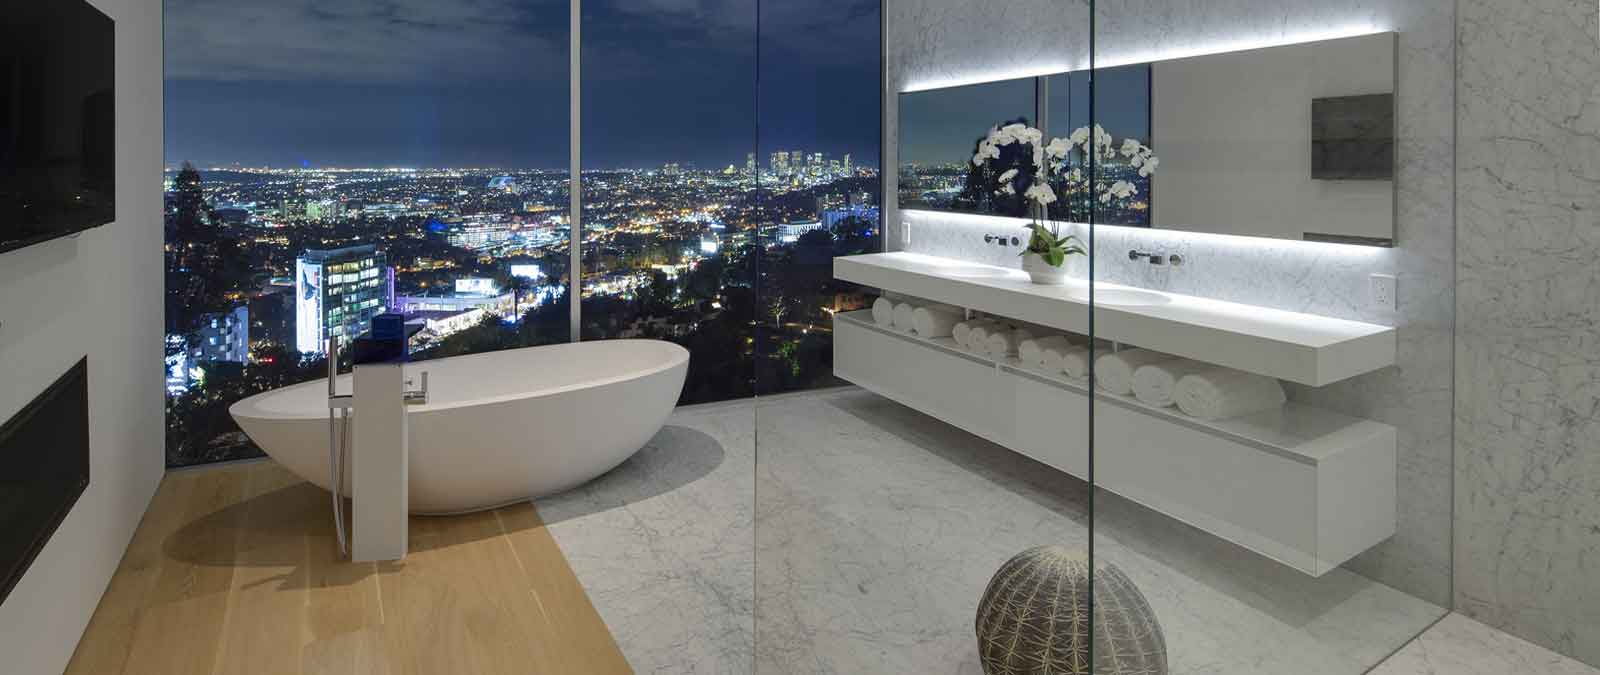 Fresh Dream Bathrooms Creative